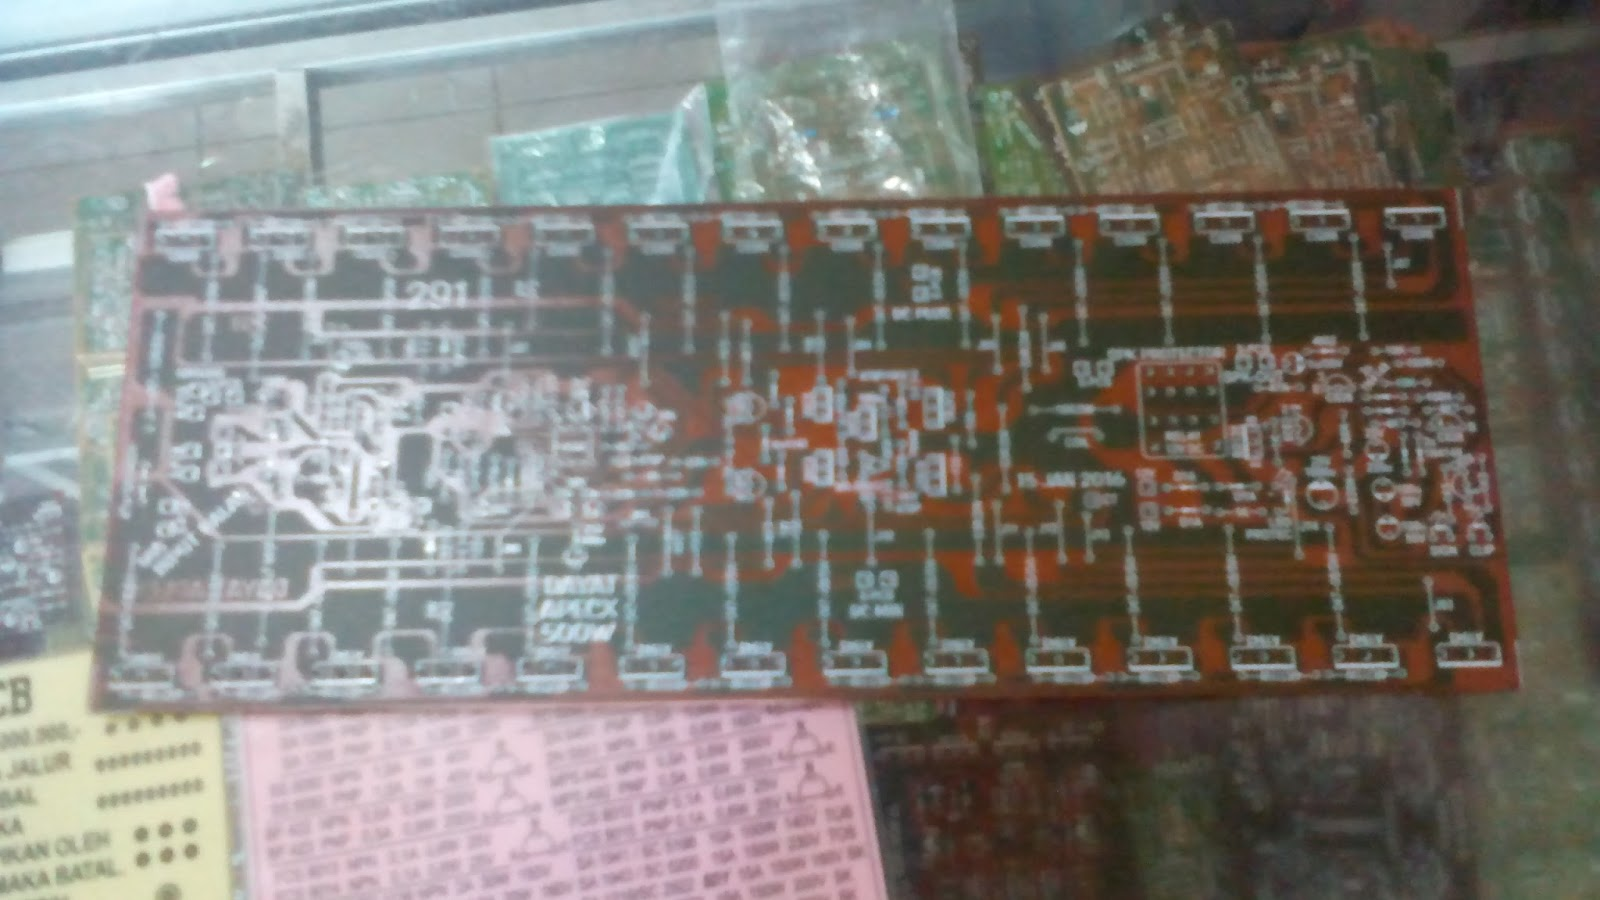 1000 Watt Audio Amplifier Circuit Diagrams 1000 Watt Amplifier APEX